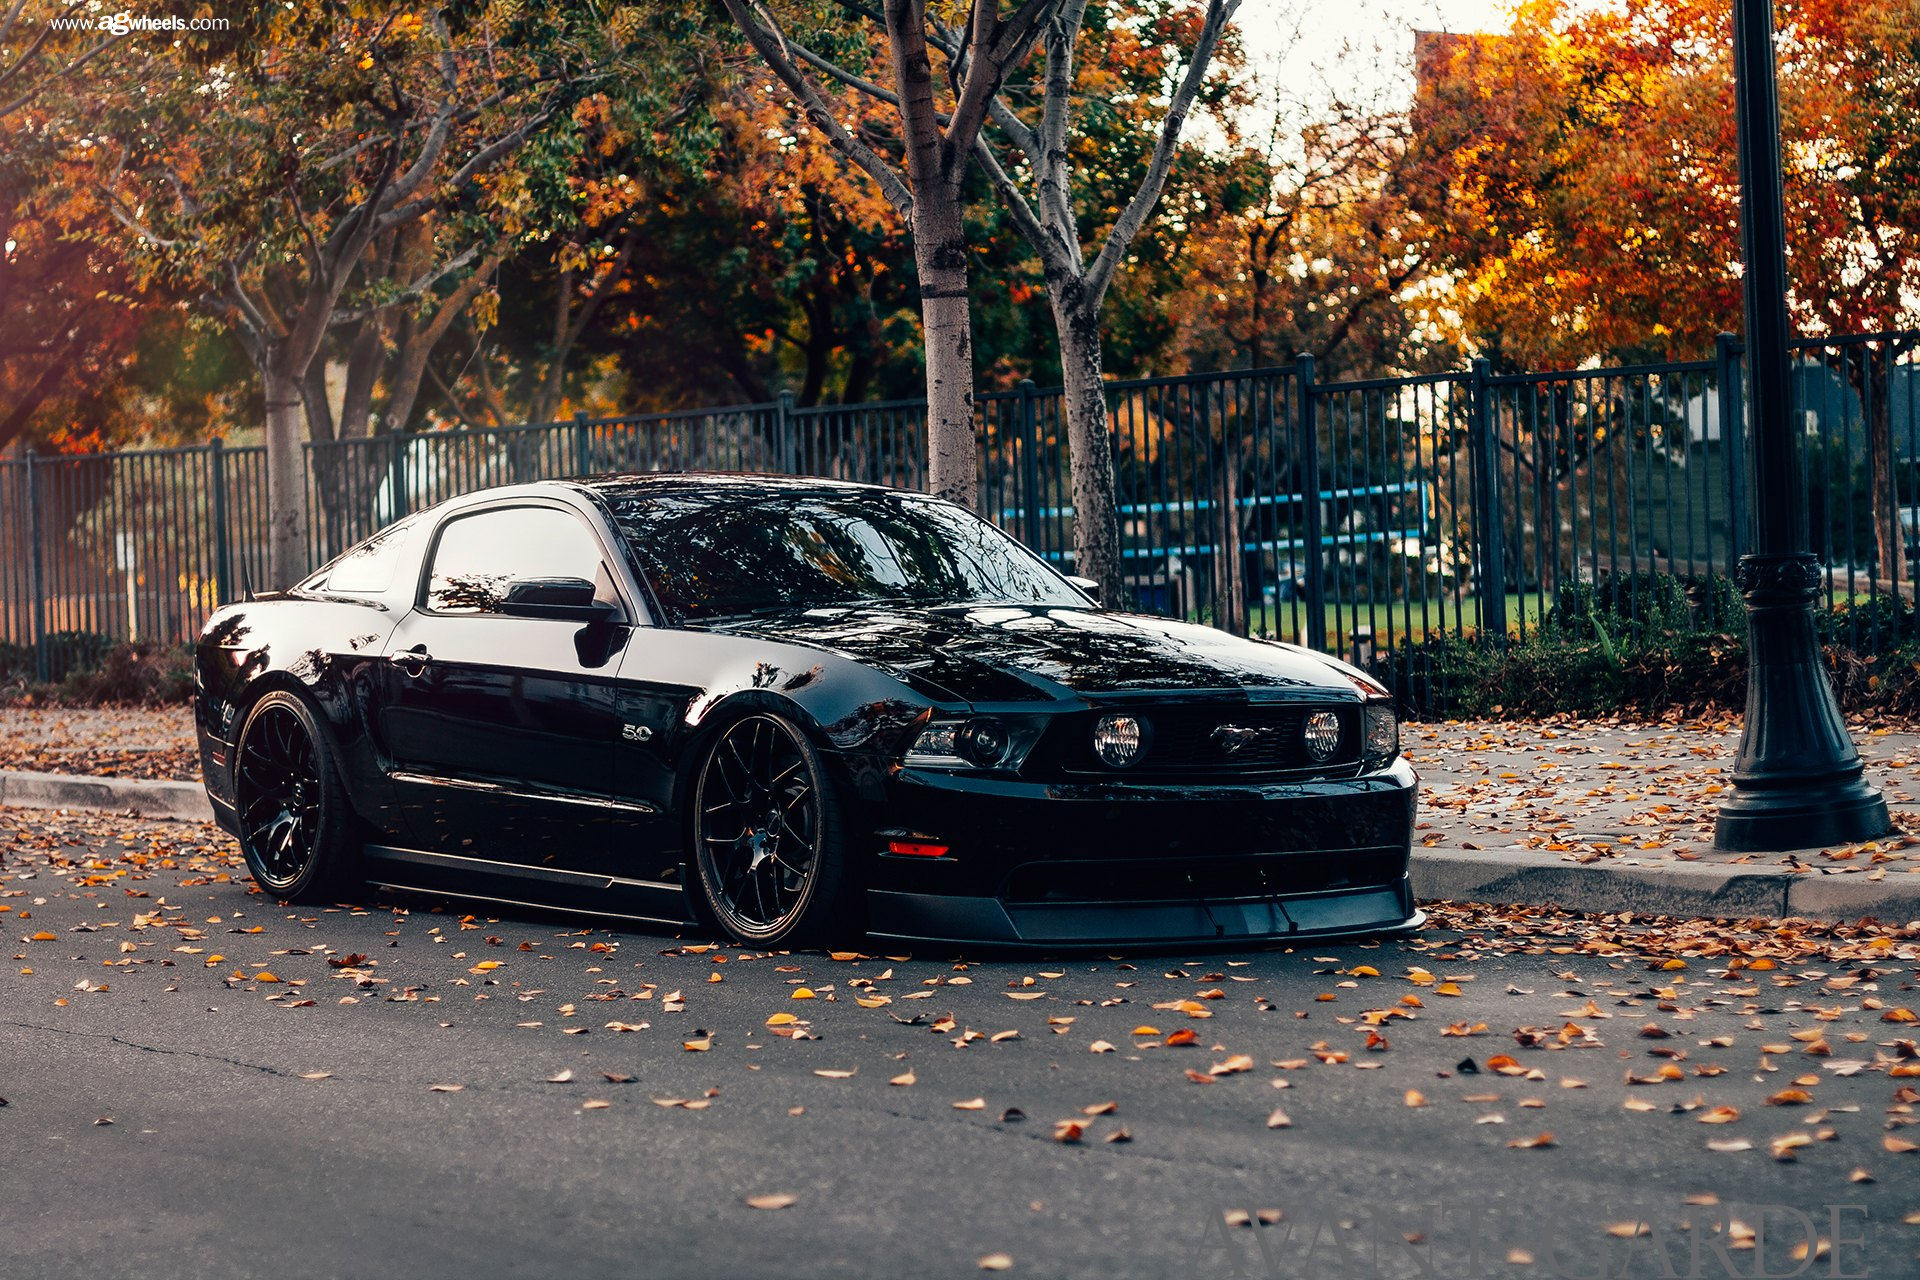 Customized Mustang >> Stealthy Black Stanced Ford Mustang 5.0 Customized to Impress — CARiD.com Gallery